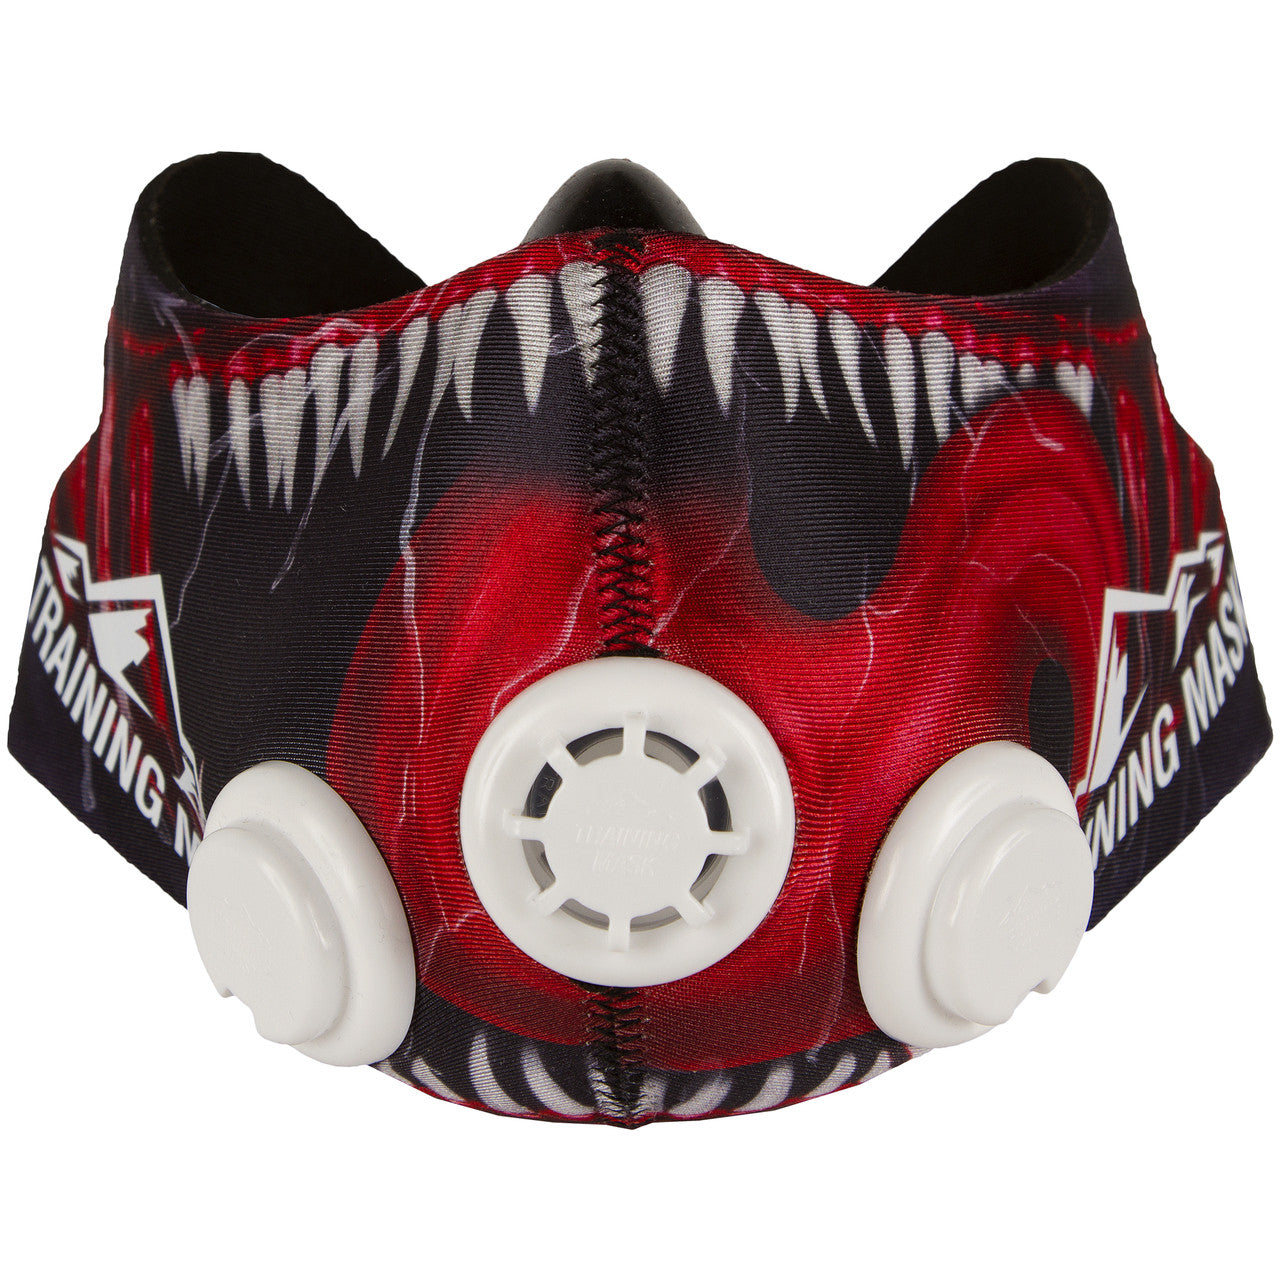 Training Mask 2.0 Venomous Sleeve